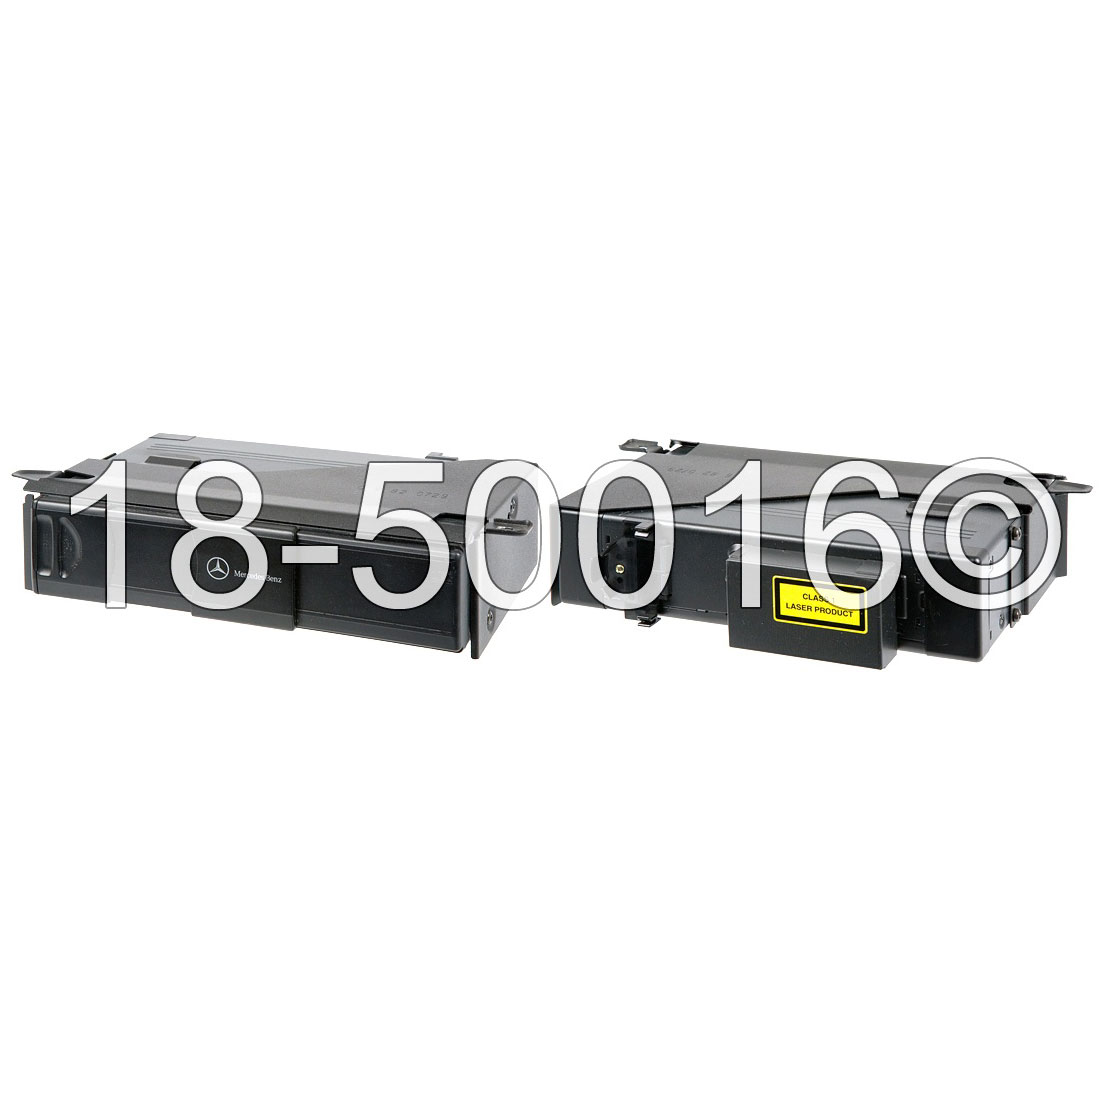 Mercedes_Benz C240                           CD or DVD ChangerCD or DVD Changer